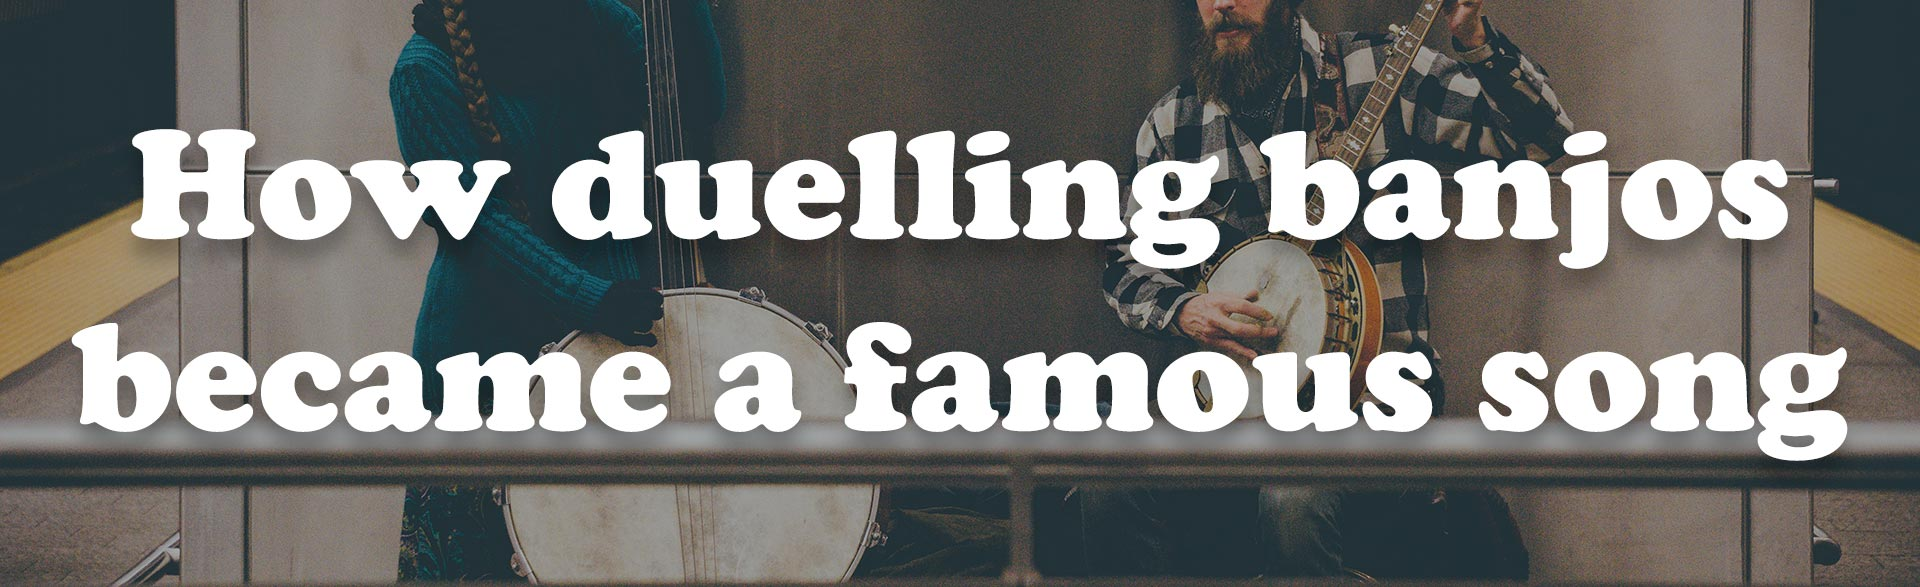 How duelling banjos became a famous song